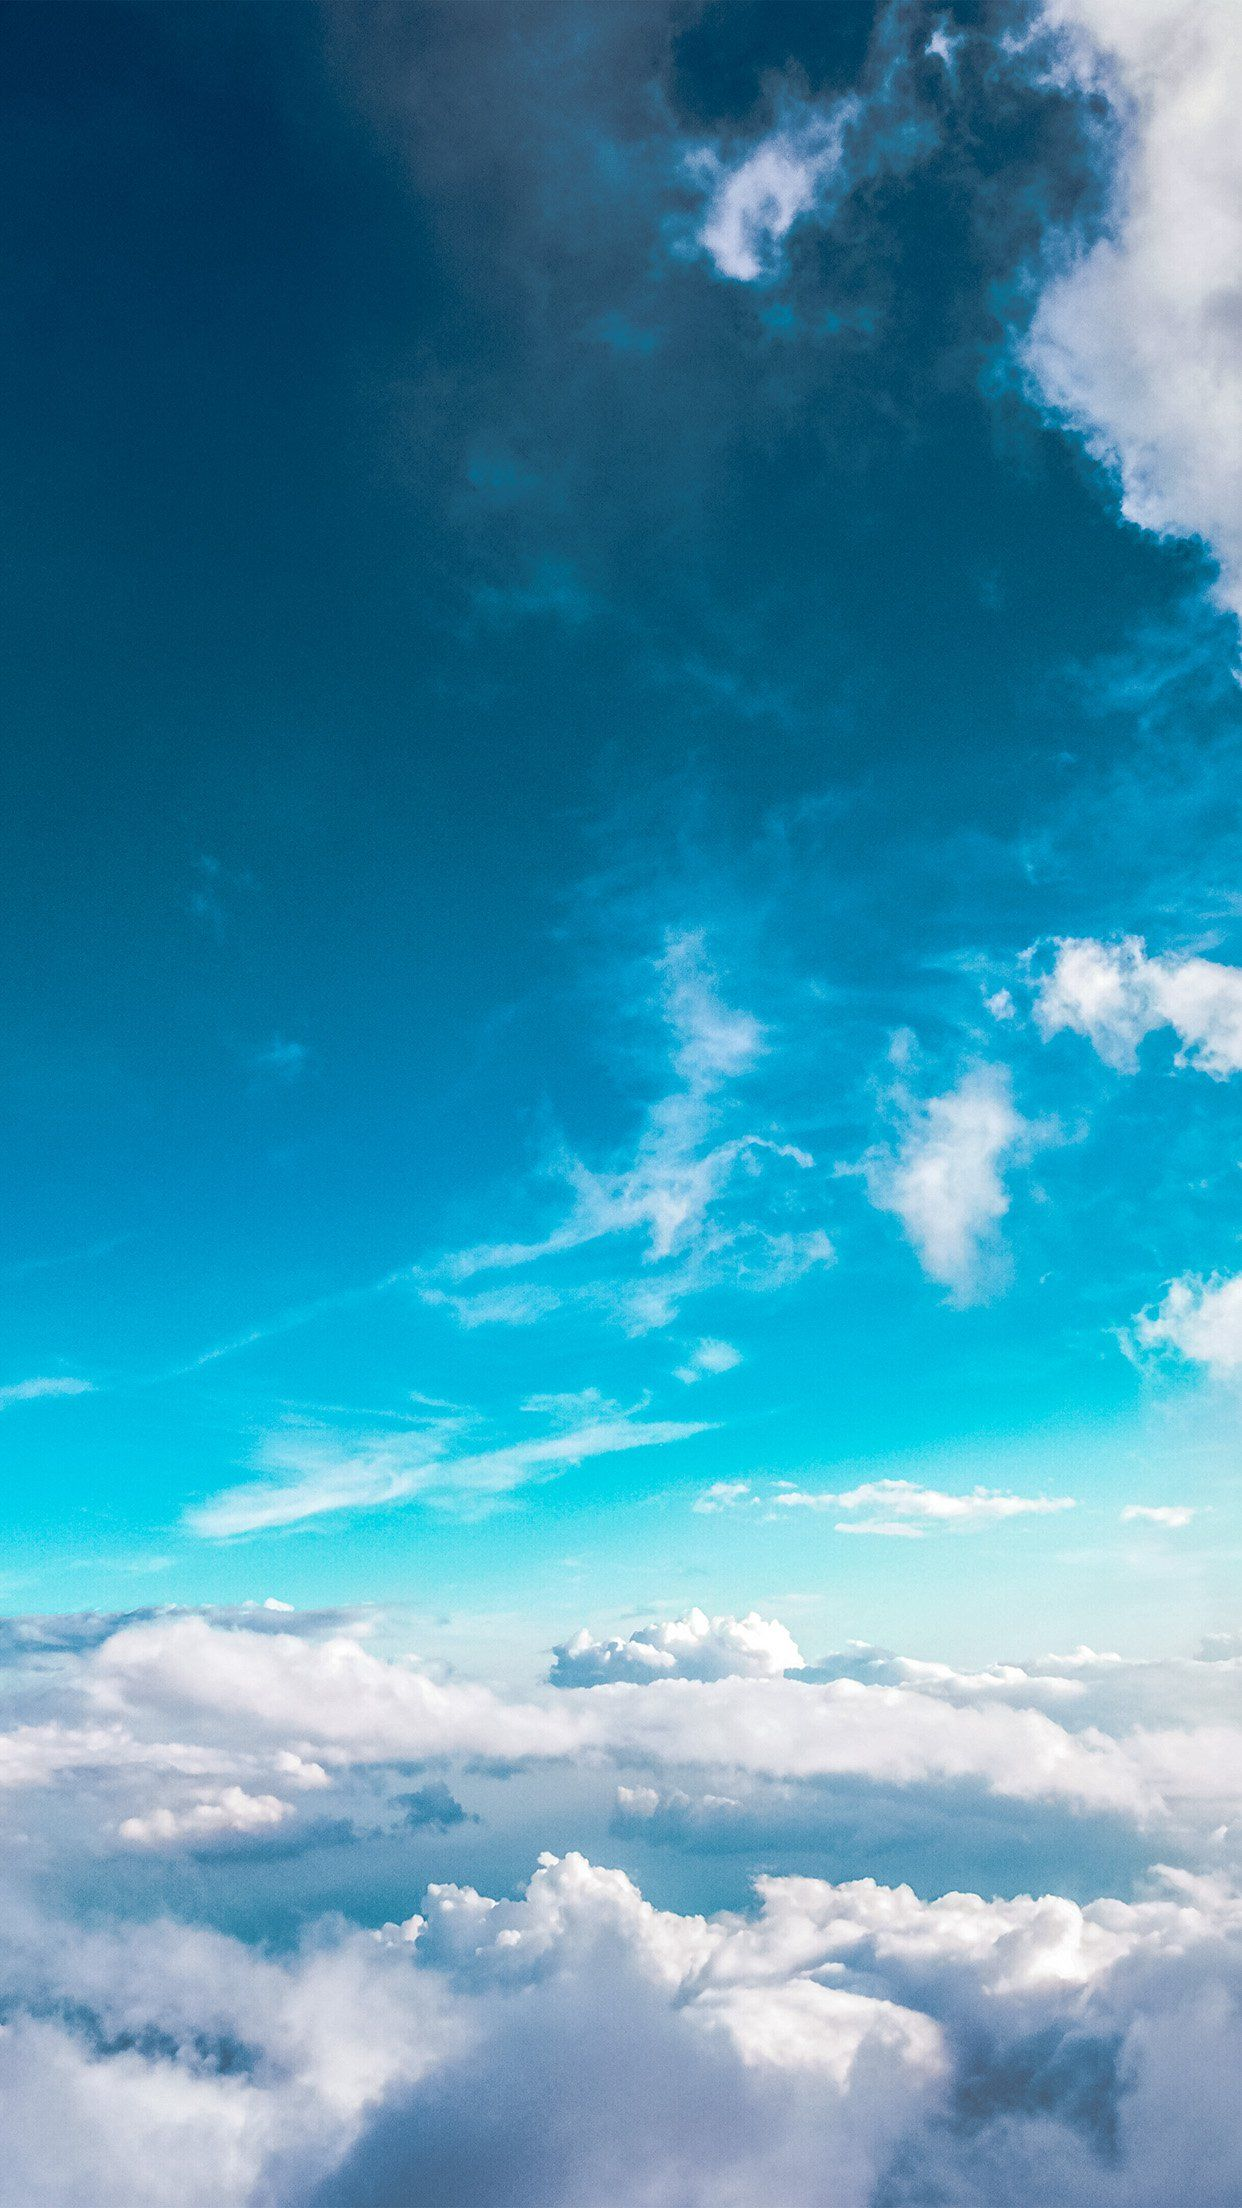 Wallpaper iphone sky - Sky Cloud Fly Blue Summer Sunny Iphone 6 Plus Wallpaper